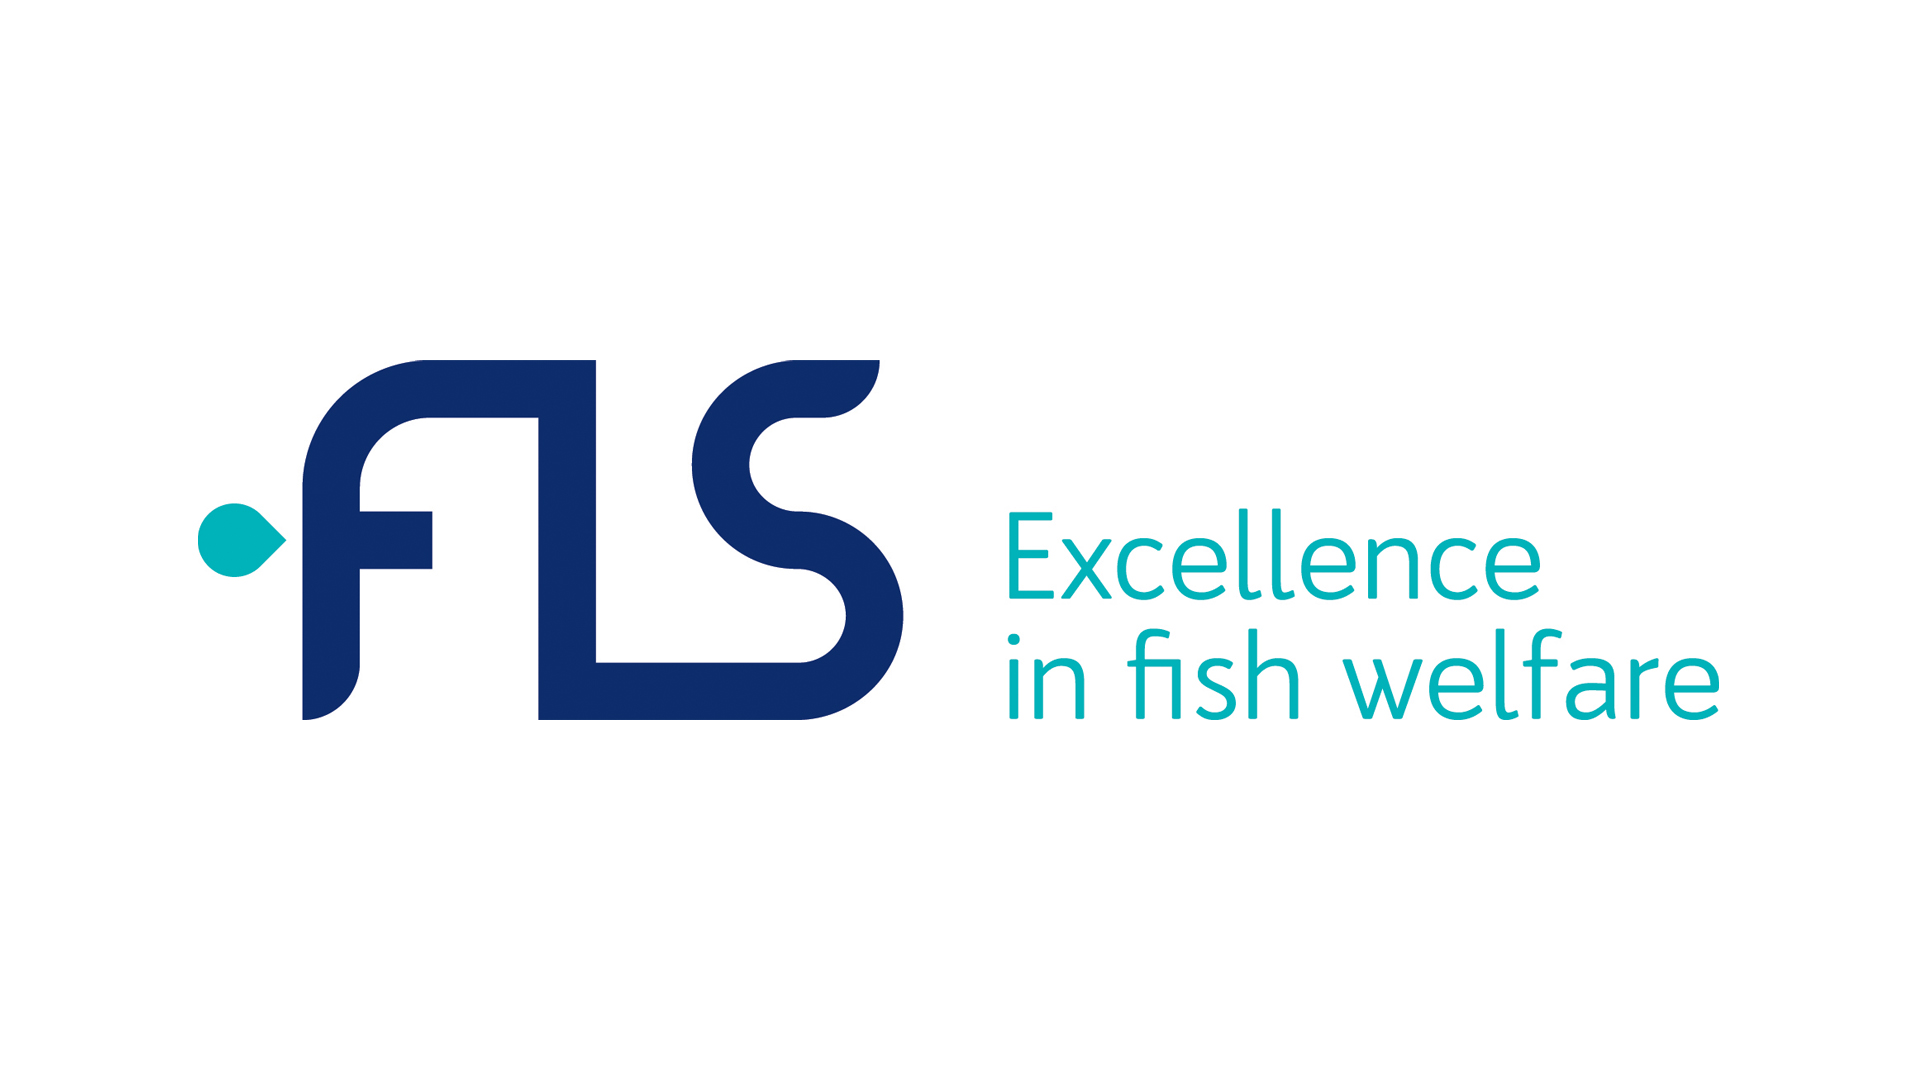 Flatsetsund Engineering: Aquaculture solutions that focus on fish welfare and sustainability